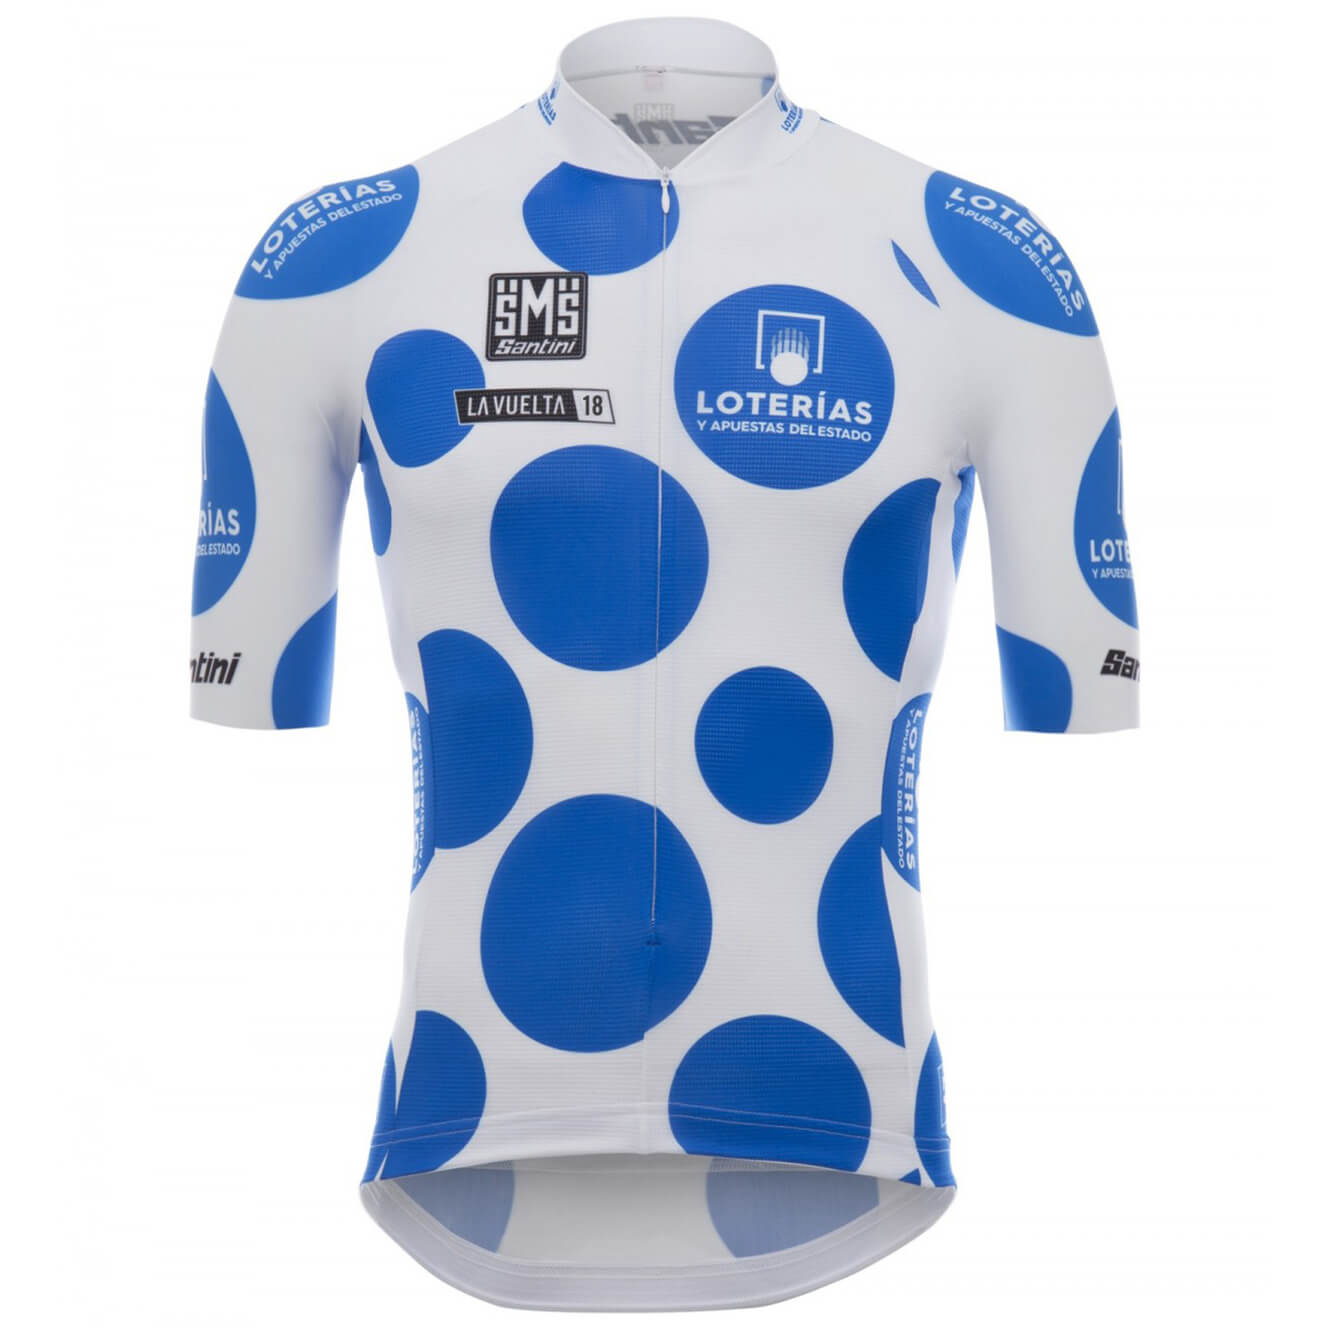 Santini La Vuelta 2018 King of the Mountain Jersey - White/Blue